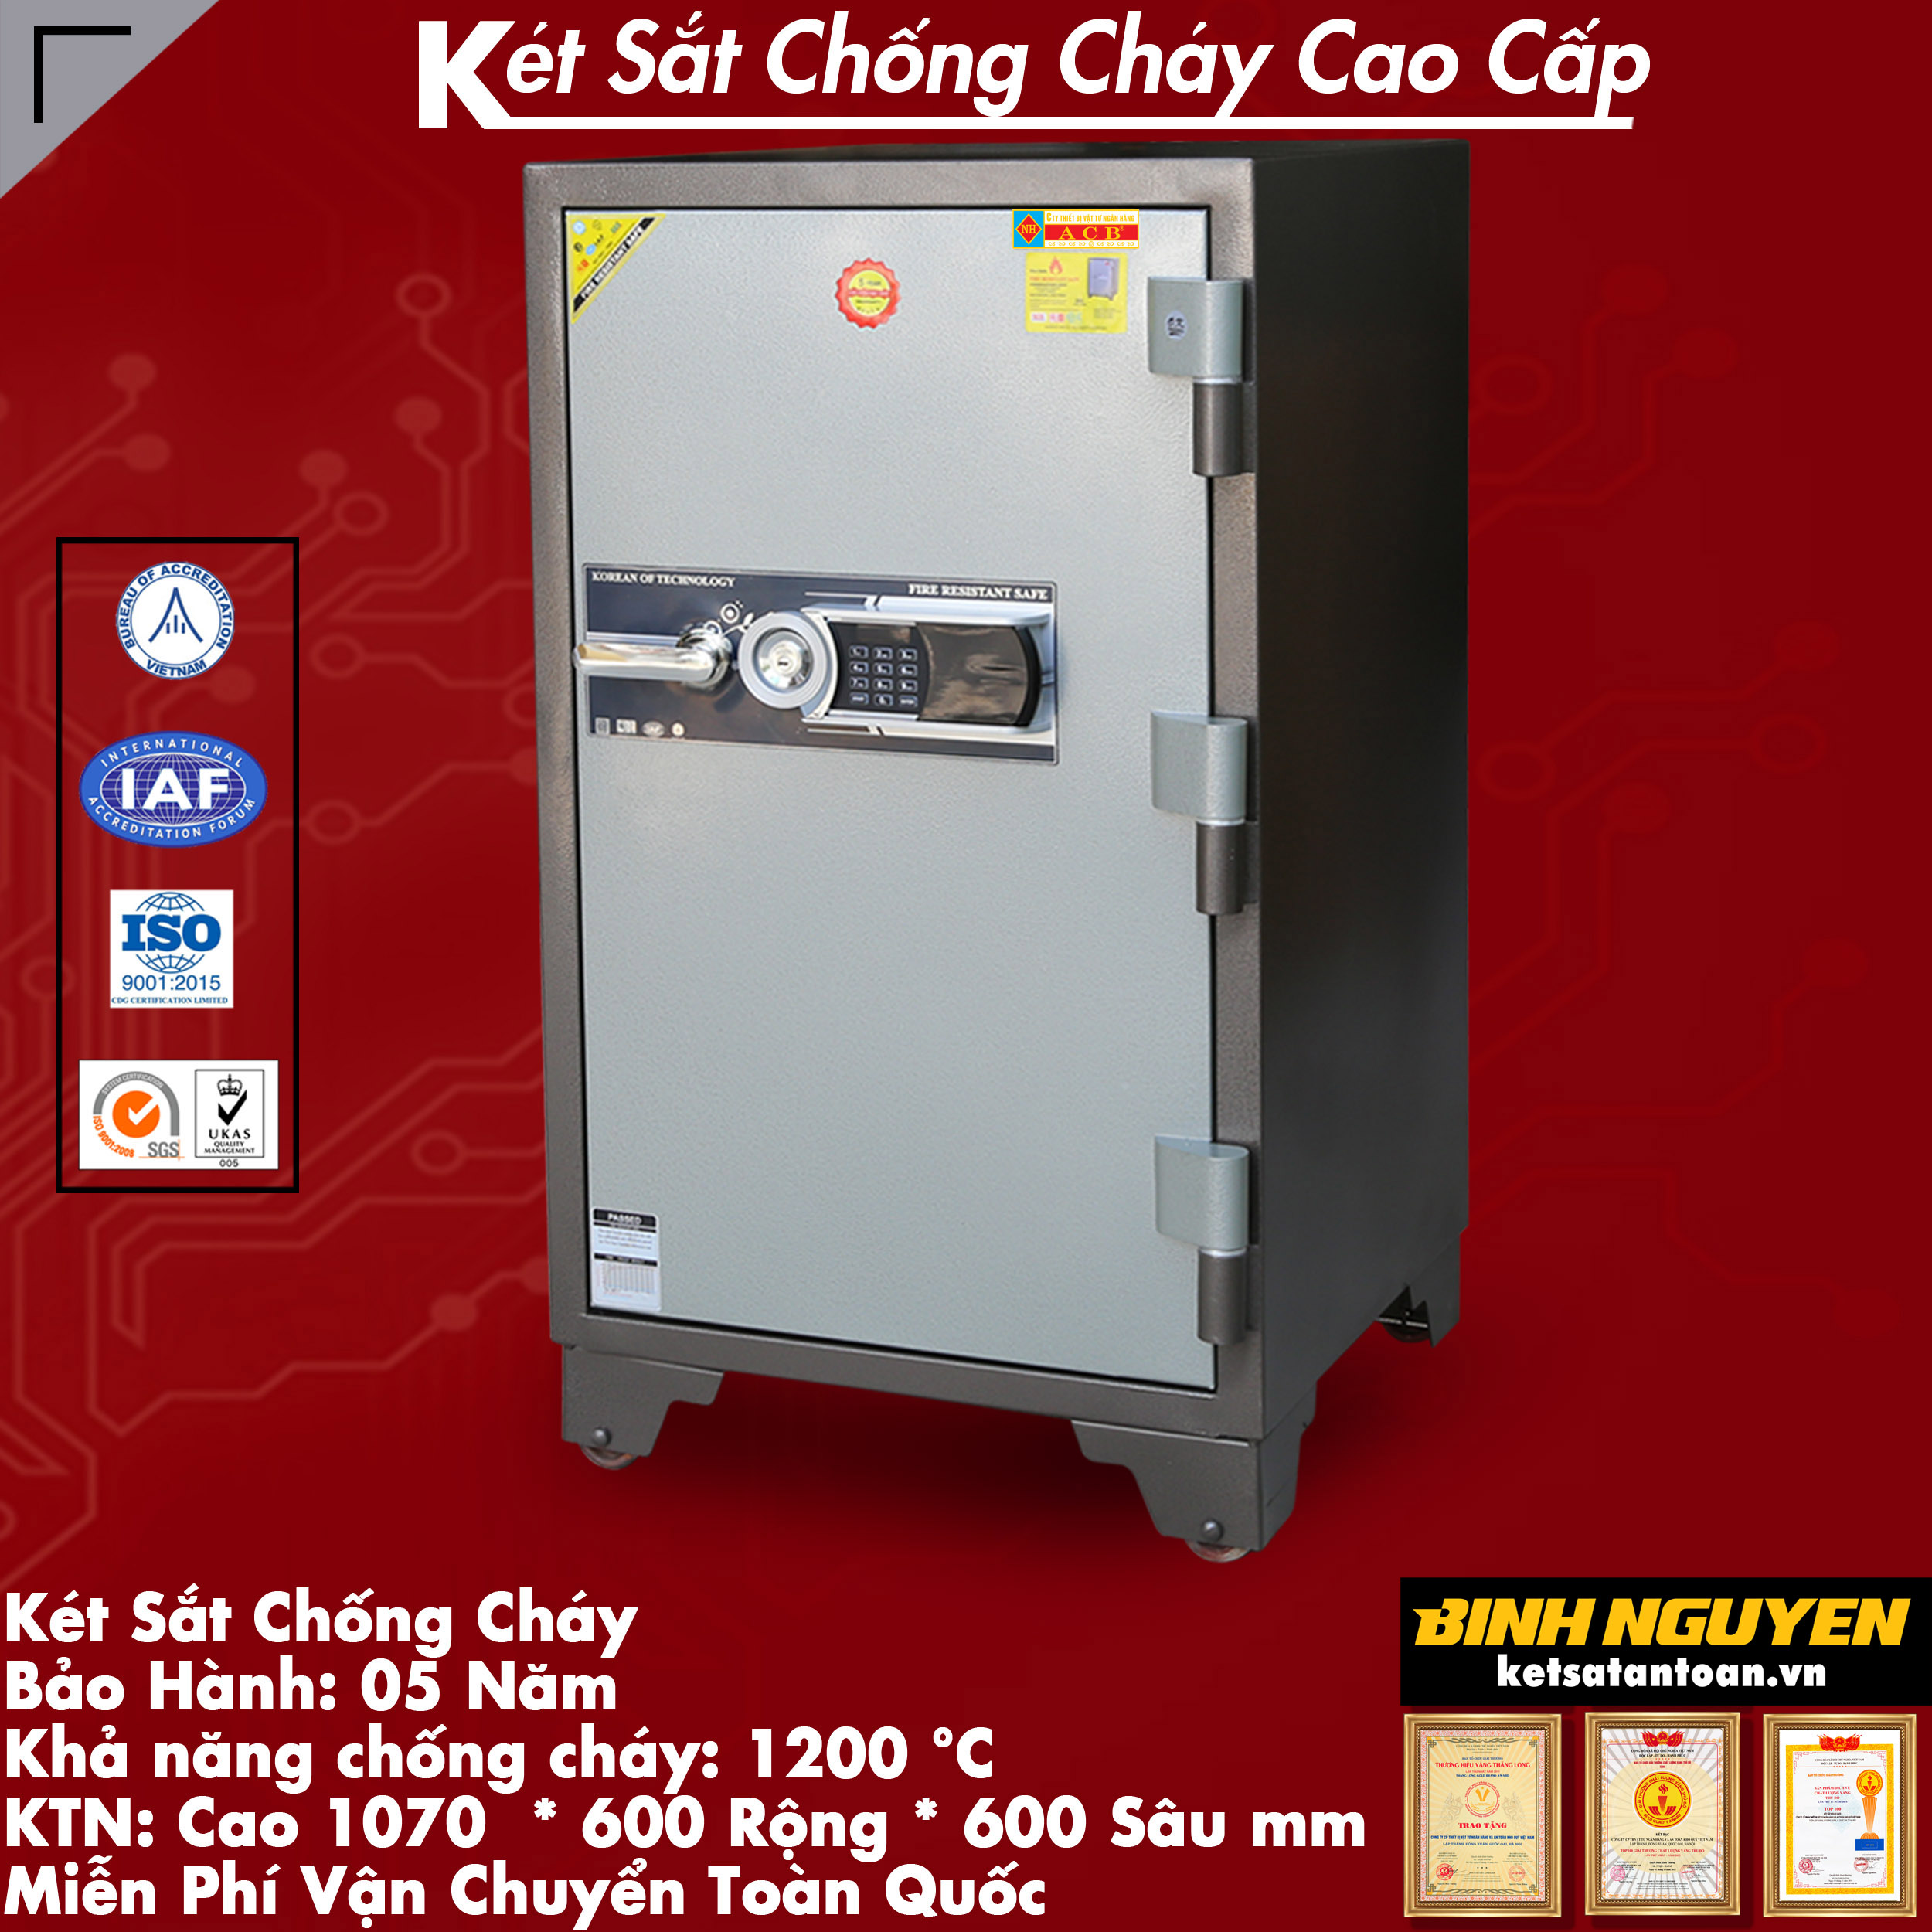 ket sat ngan hang chinh hang